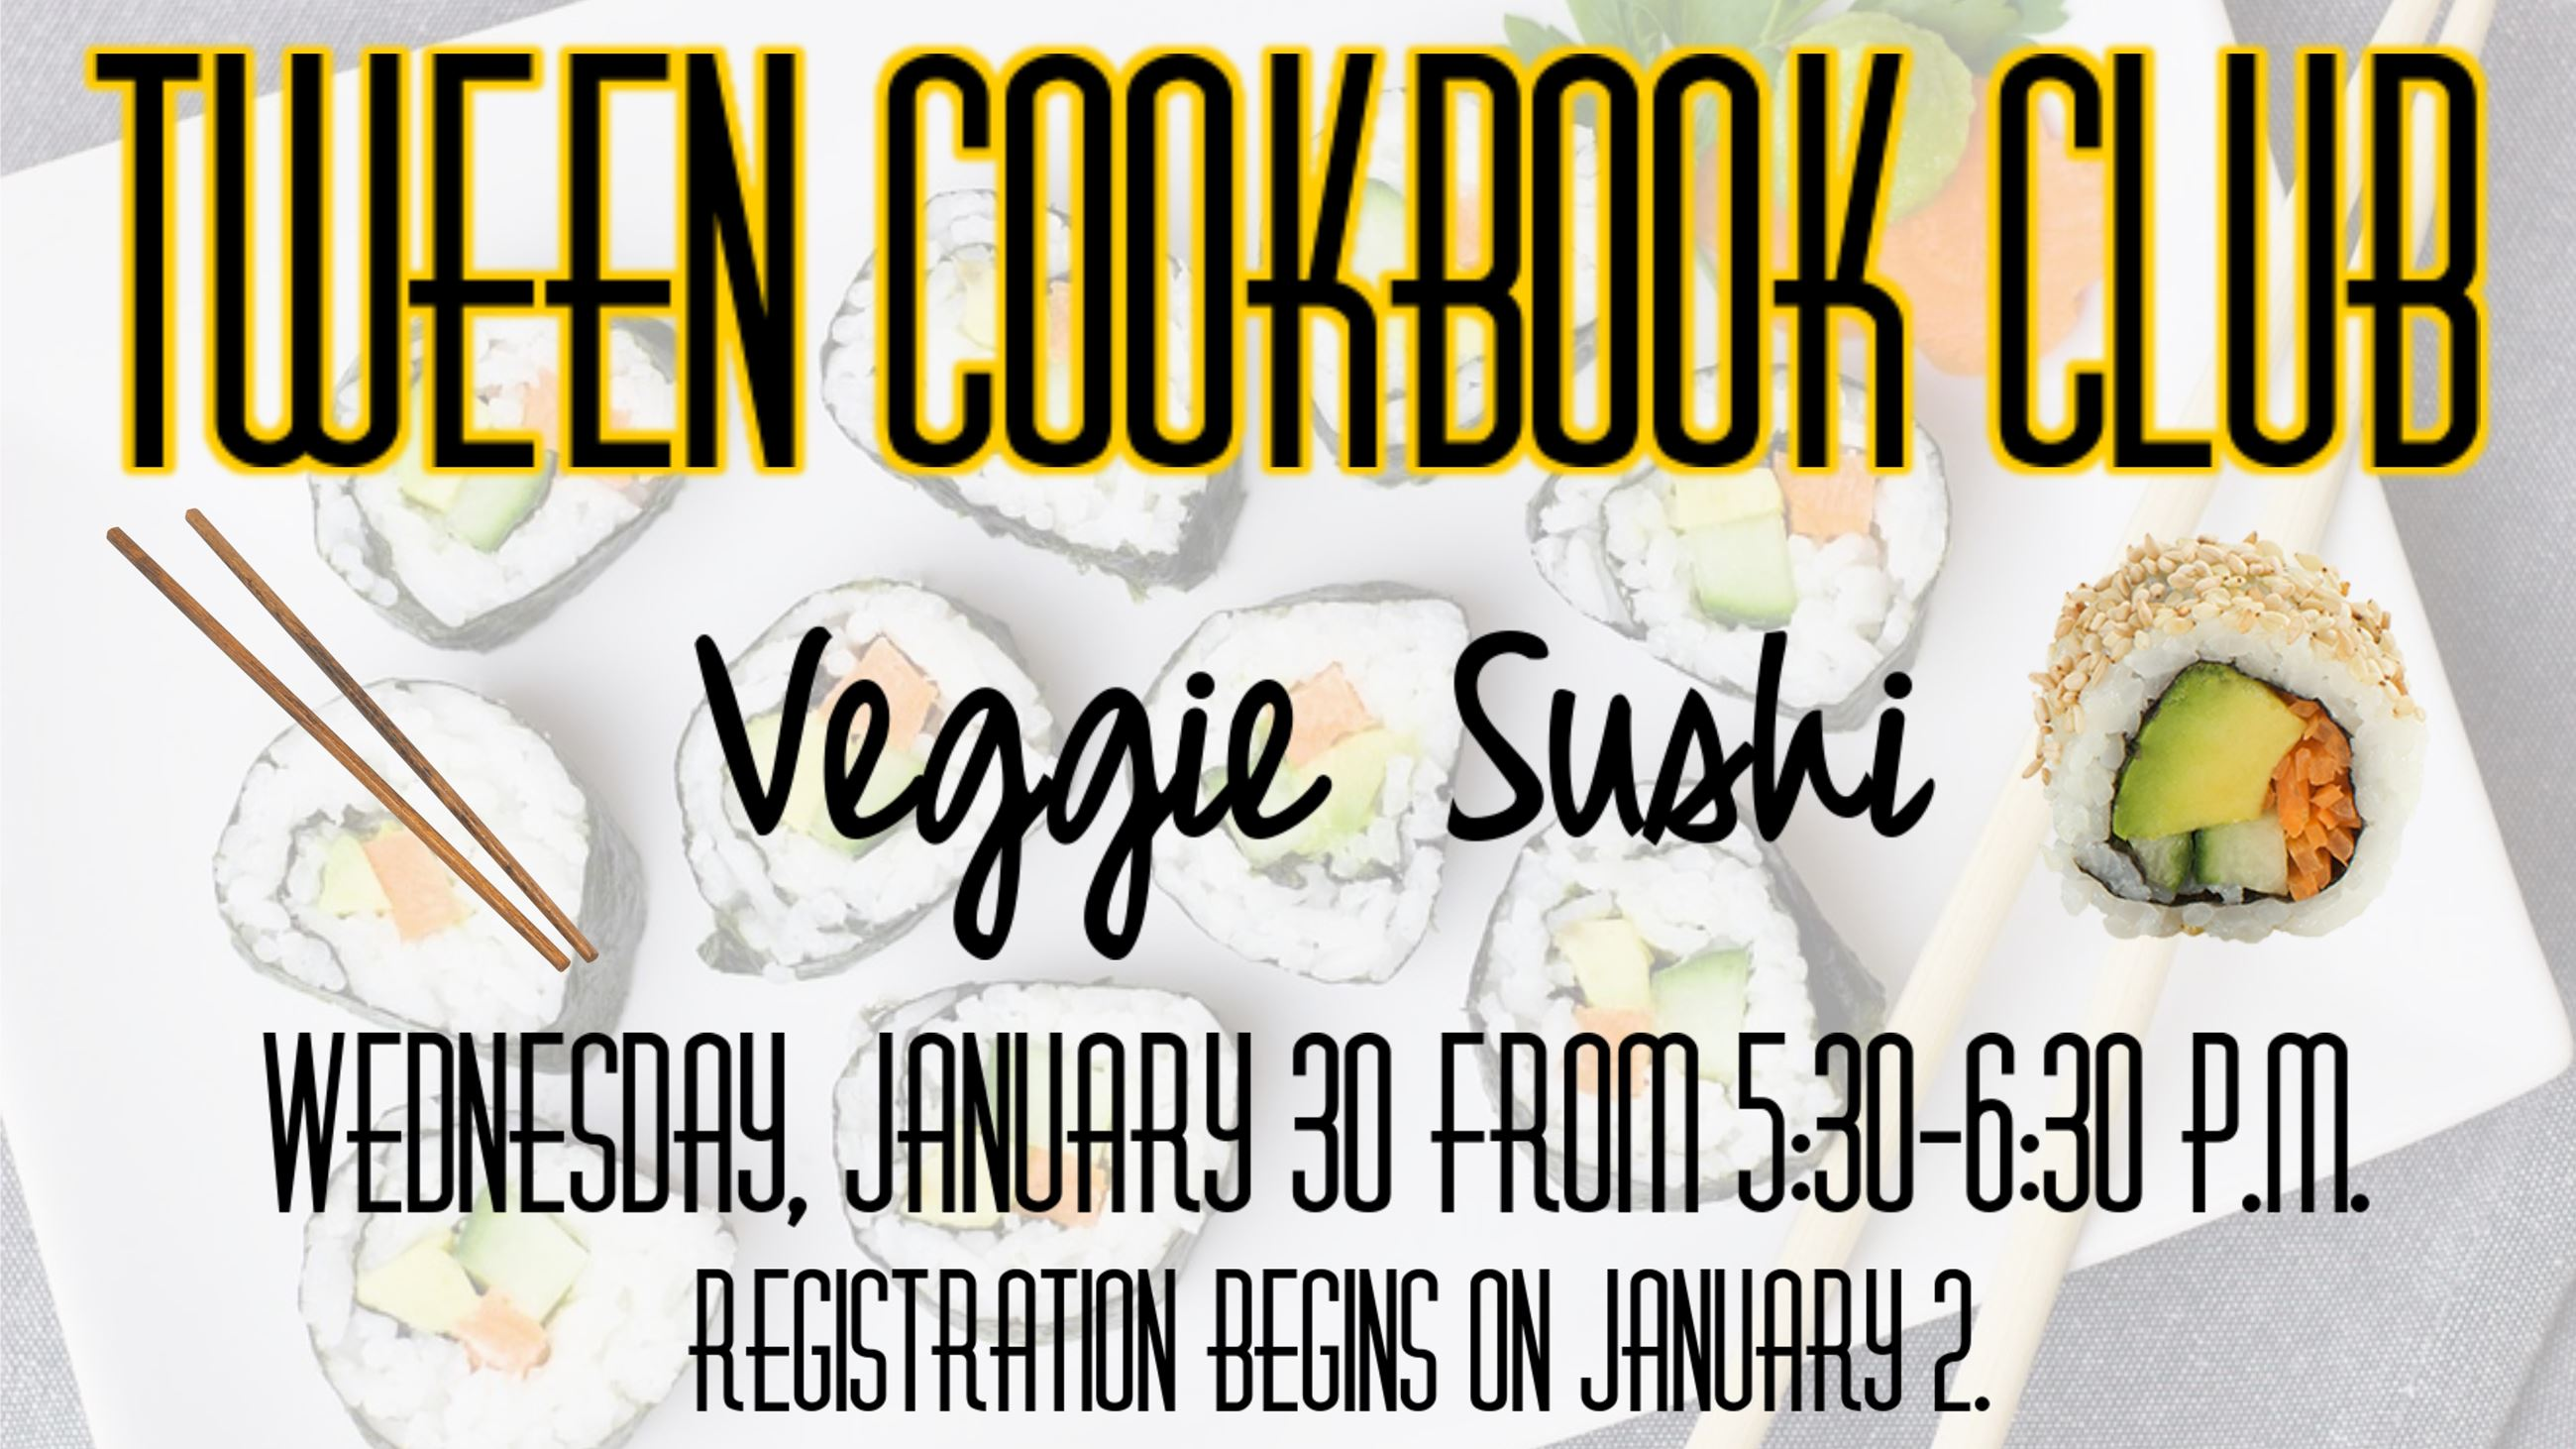 Tween Cookbook Club Veggie Sushi. January 30 from 5:30 to 6:30. Registration begins January 2.